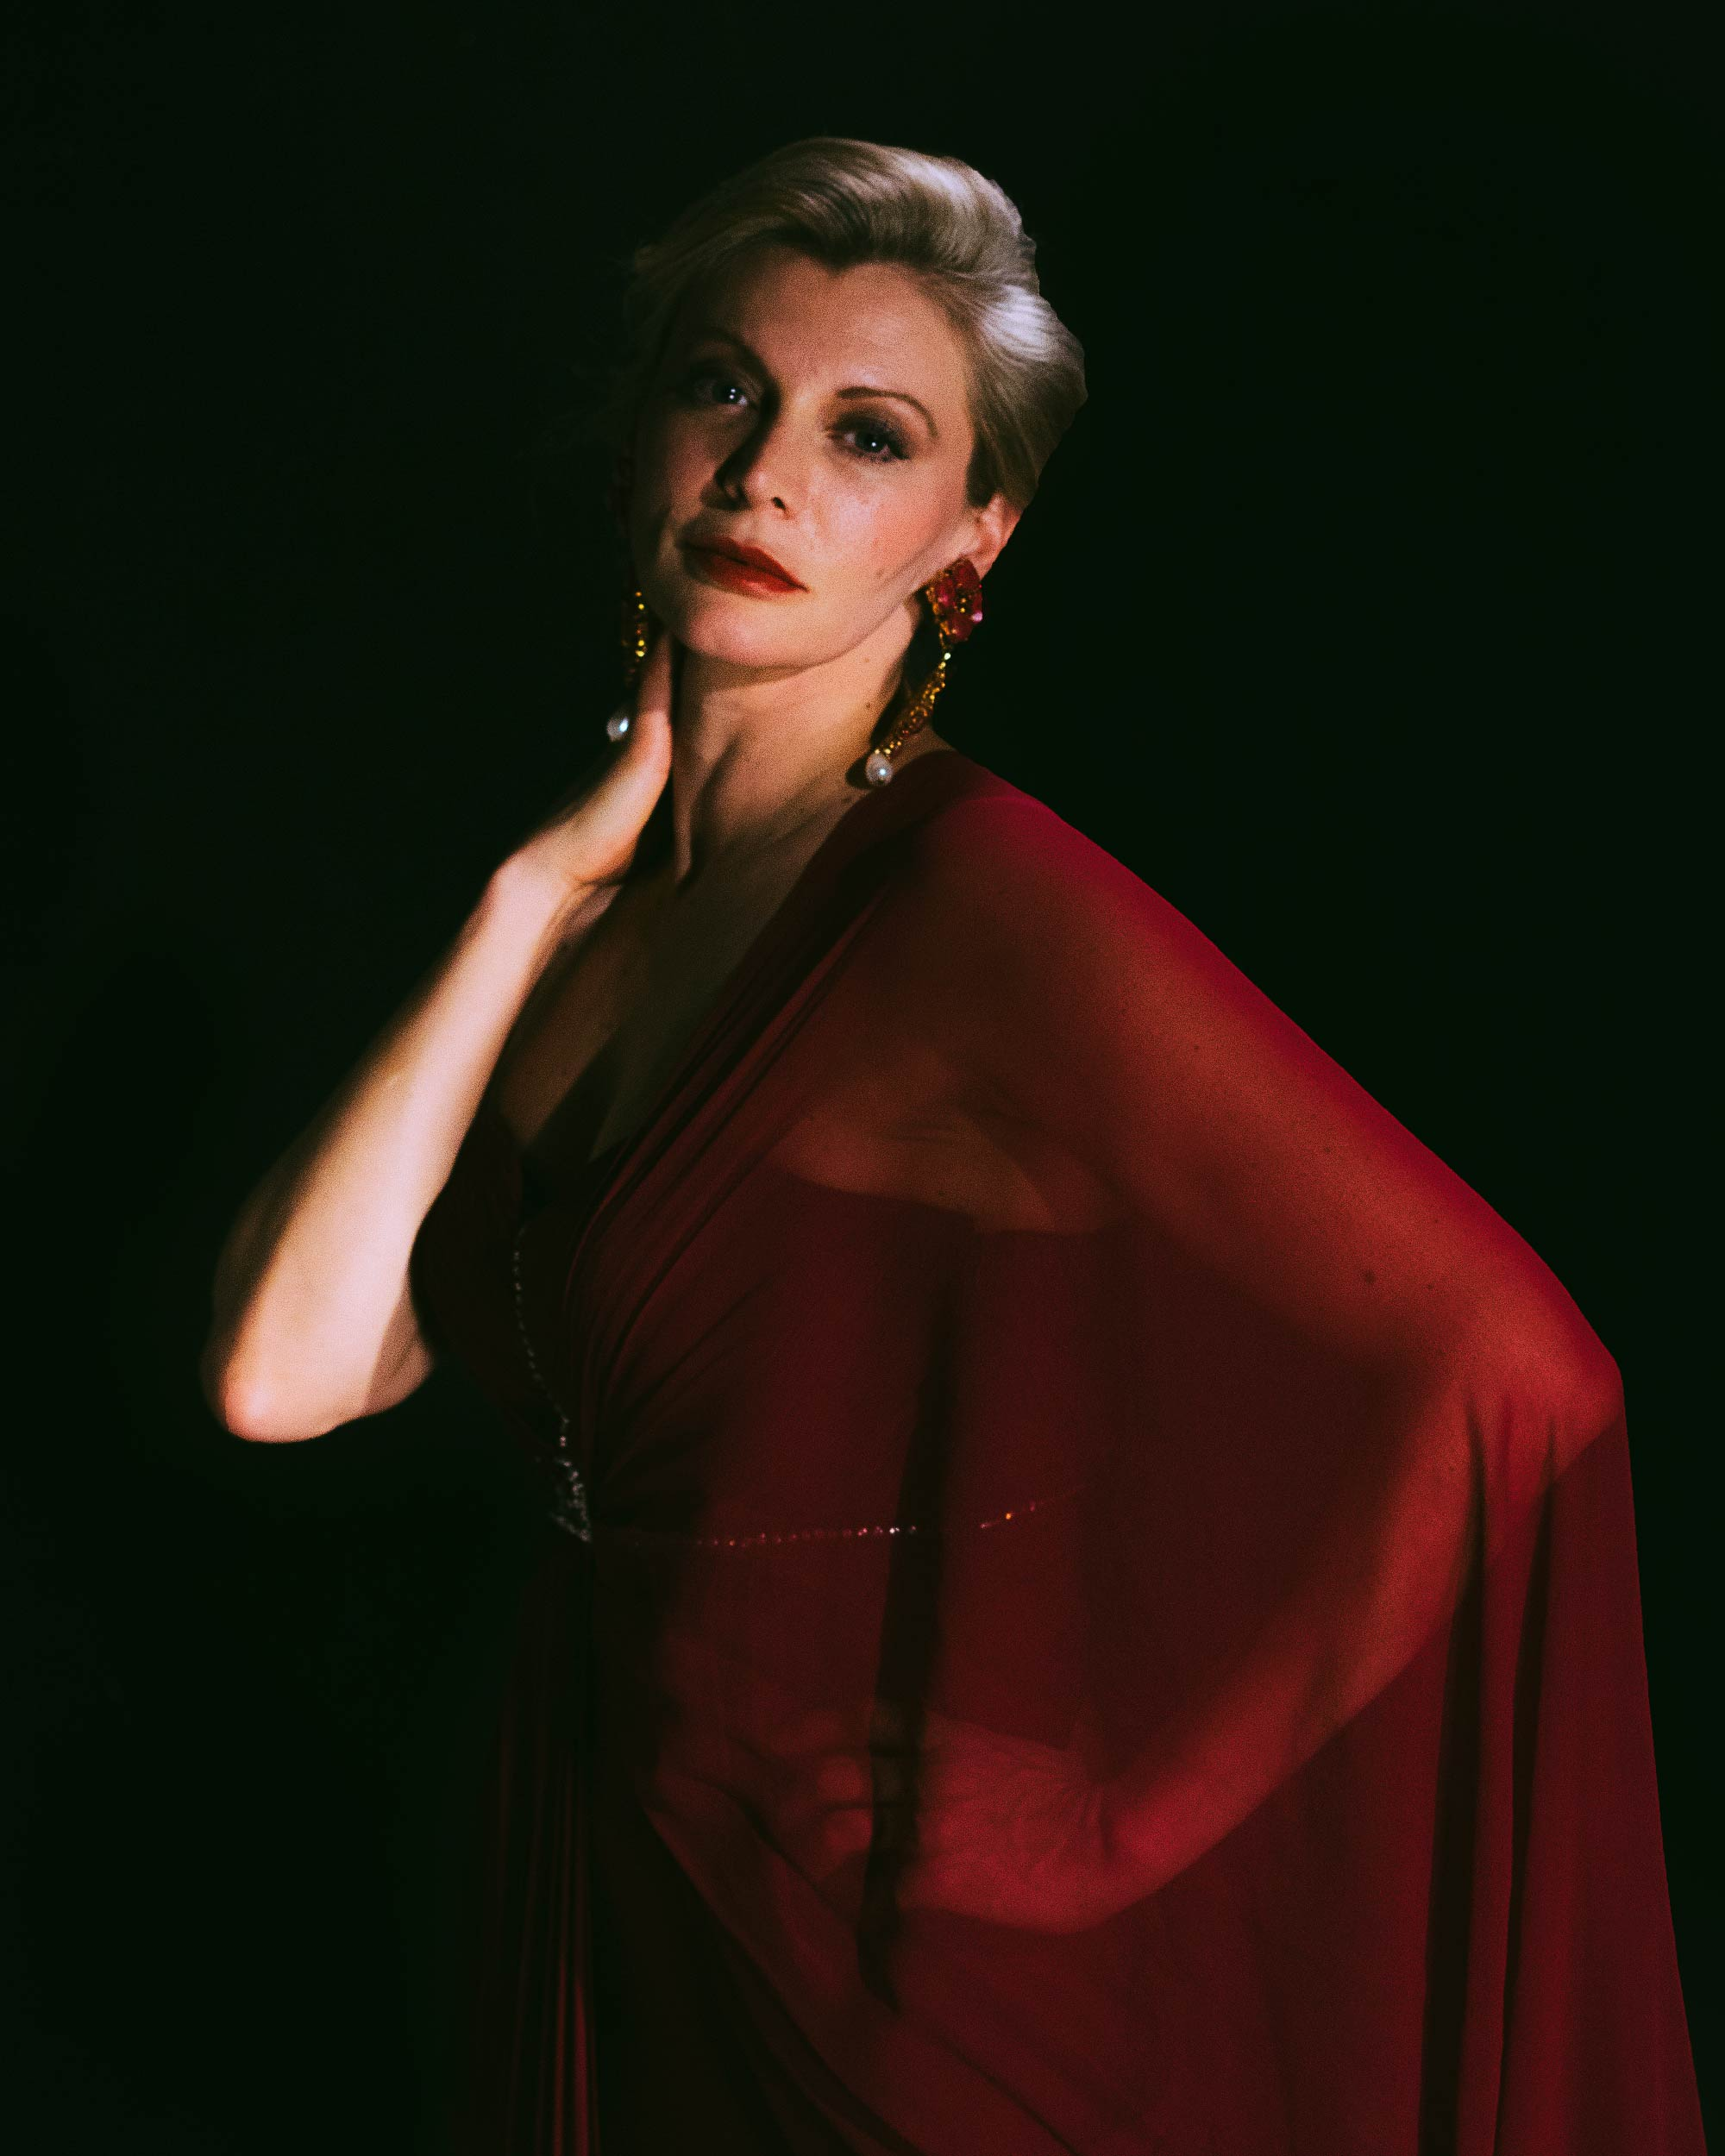 Makeup for London fashion shoot. Woman in red dress and shawl poses for photo (2).